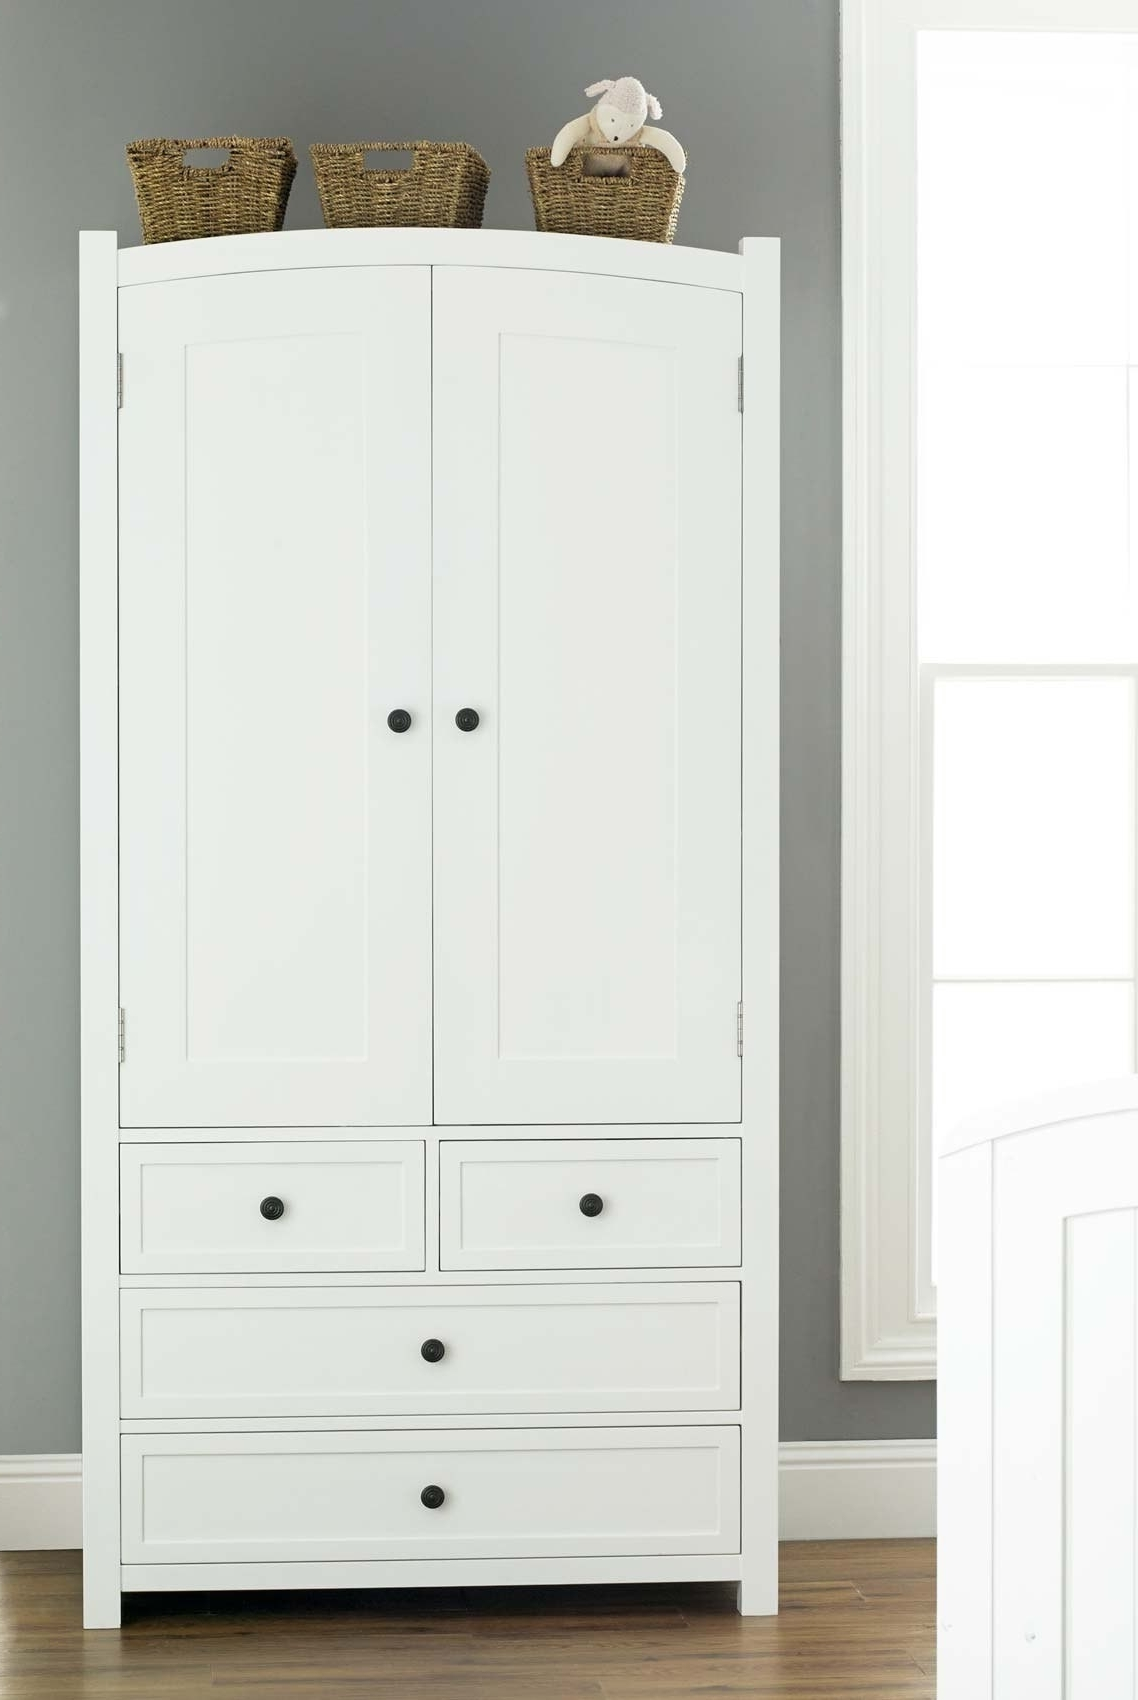 Kids White Wardrobe Luxury Wardrobe Flawless White Wooden Kids With Most Recent White Wooden Wardrobes (View 2 of 15)